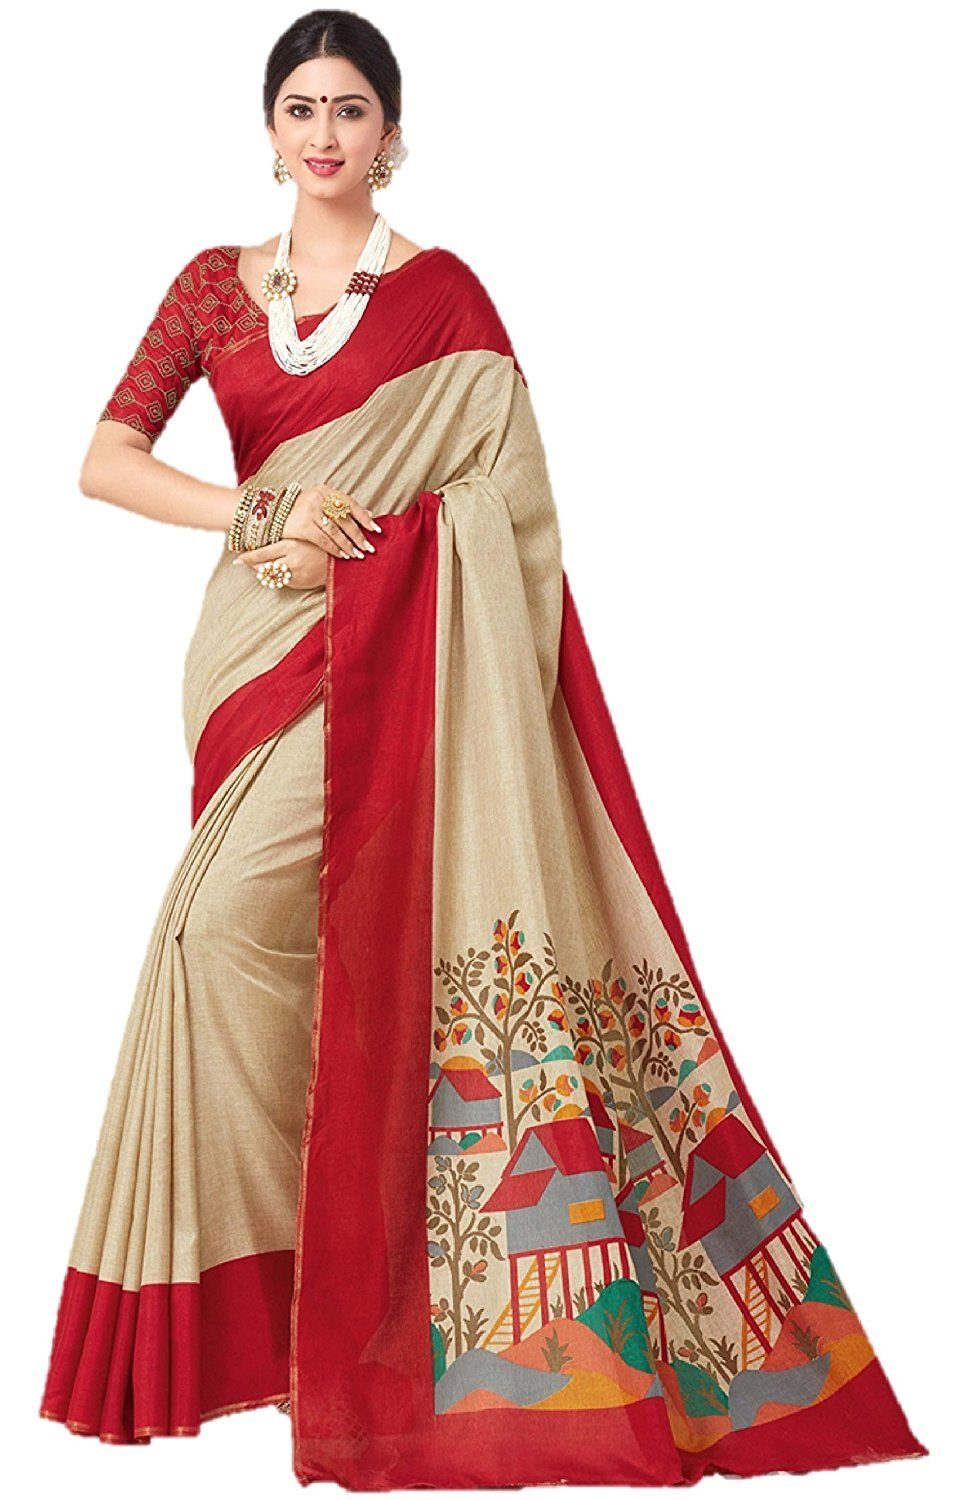 b0de95ffe8 Online Shopping Site for Handloom & Customize Products. Miraan Linen Saree  (Srh008_Red): Amazon.in: Clothing & Accessories